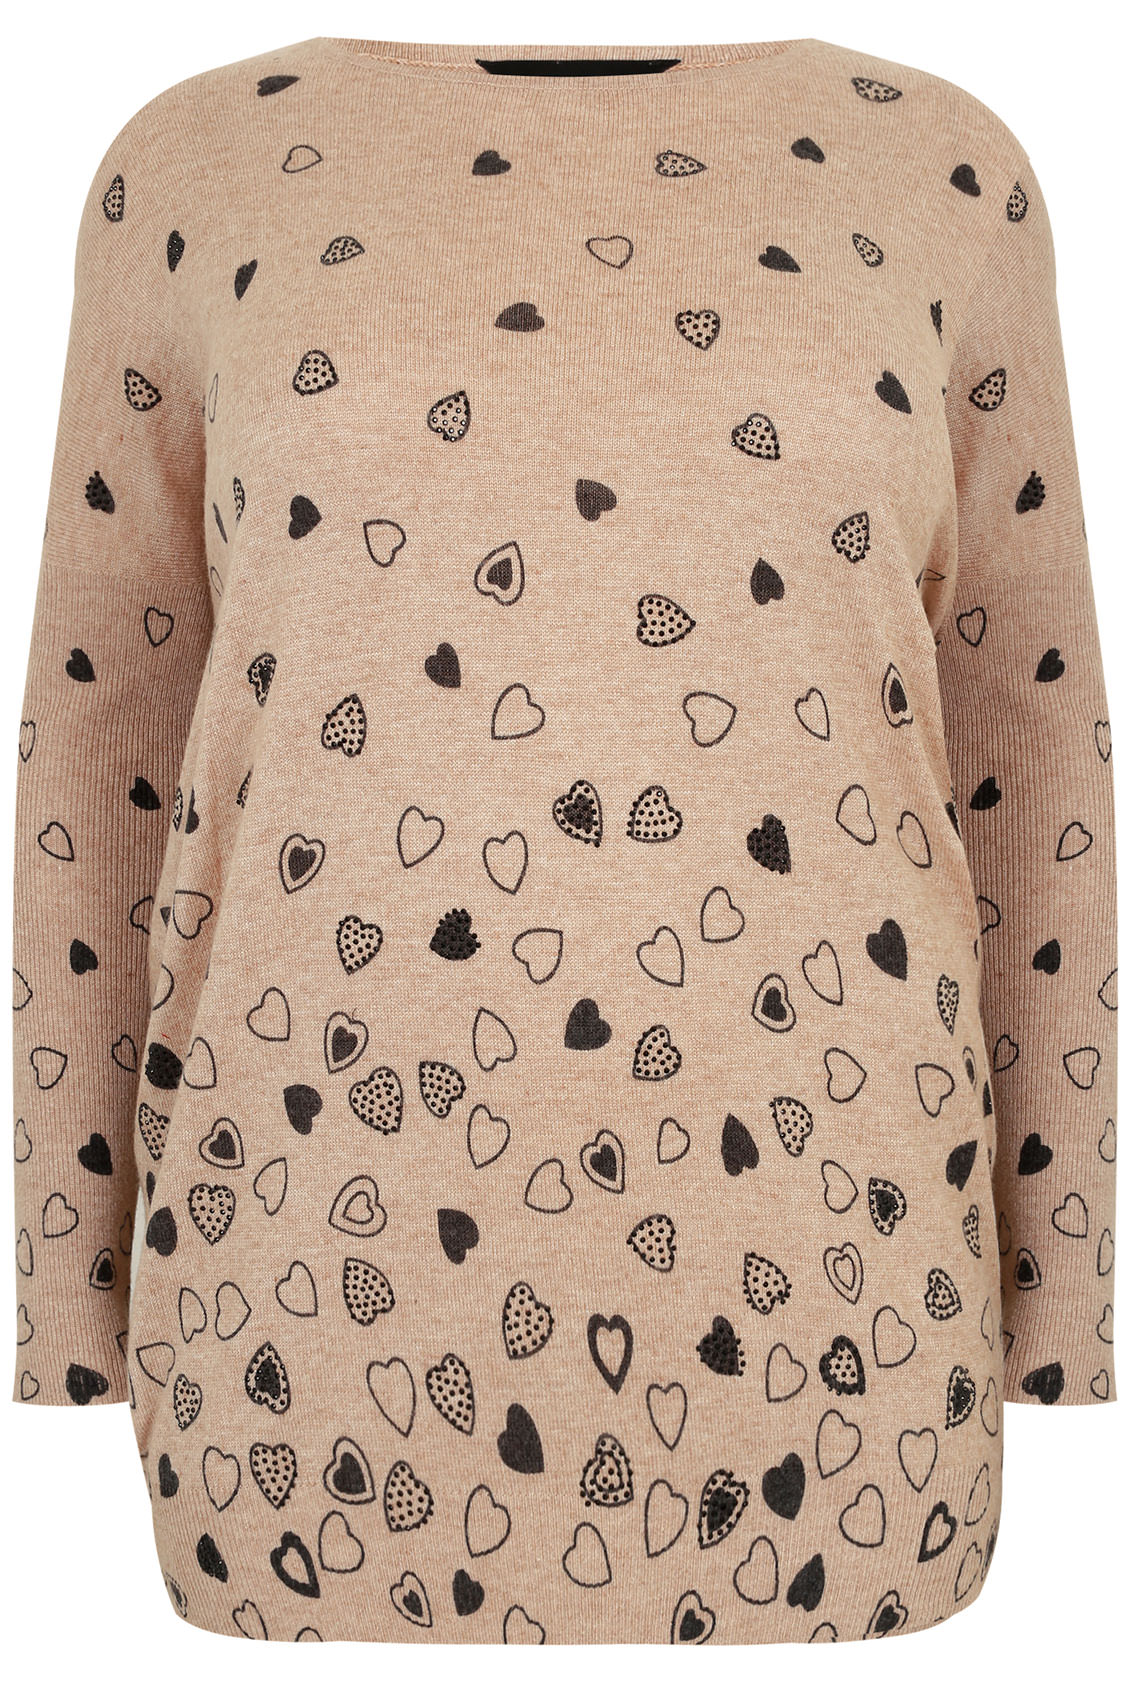 Oatmeal Brown Embellished Heart Print Knit Jumper Plus ...